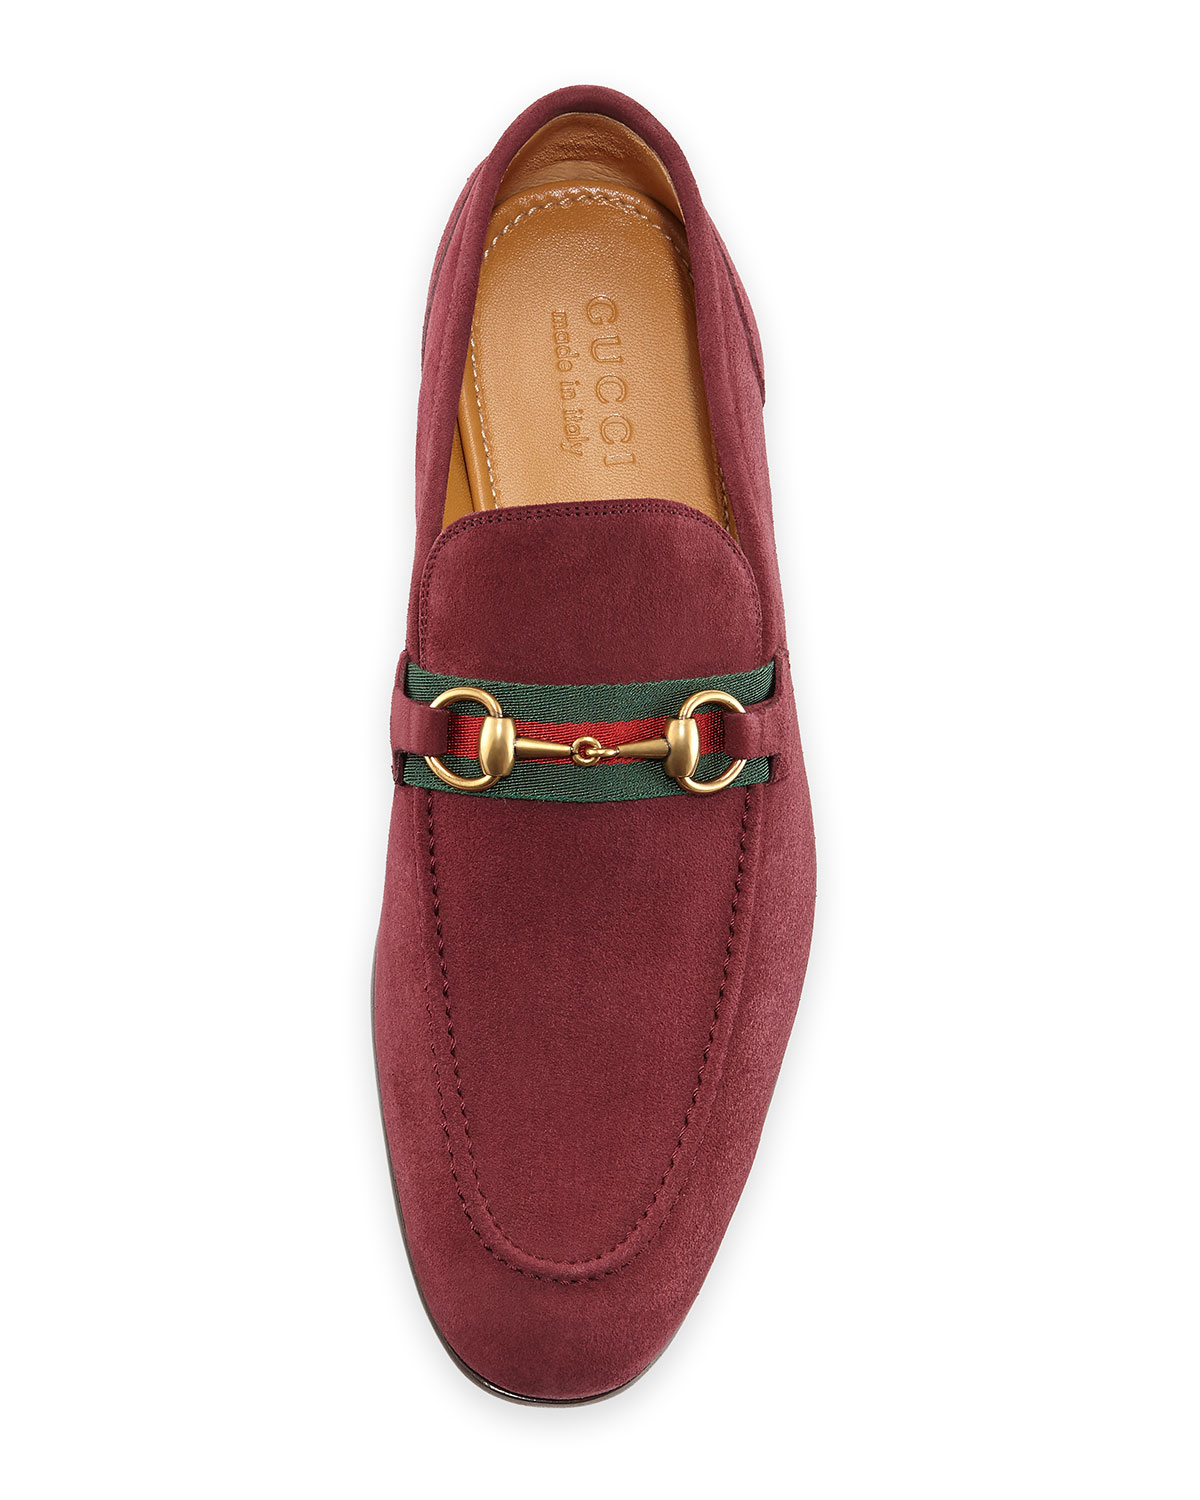 Gucci Suede Horsebit Loafer in Purple for Men - Lyst